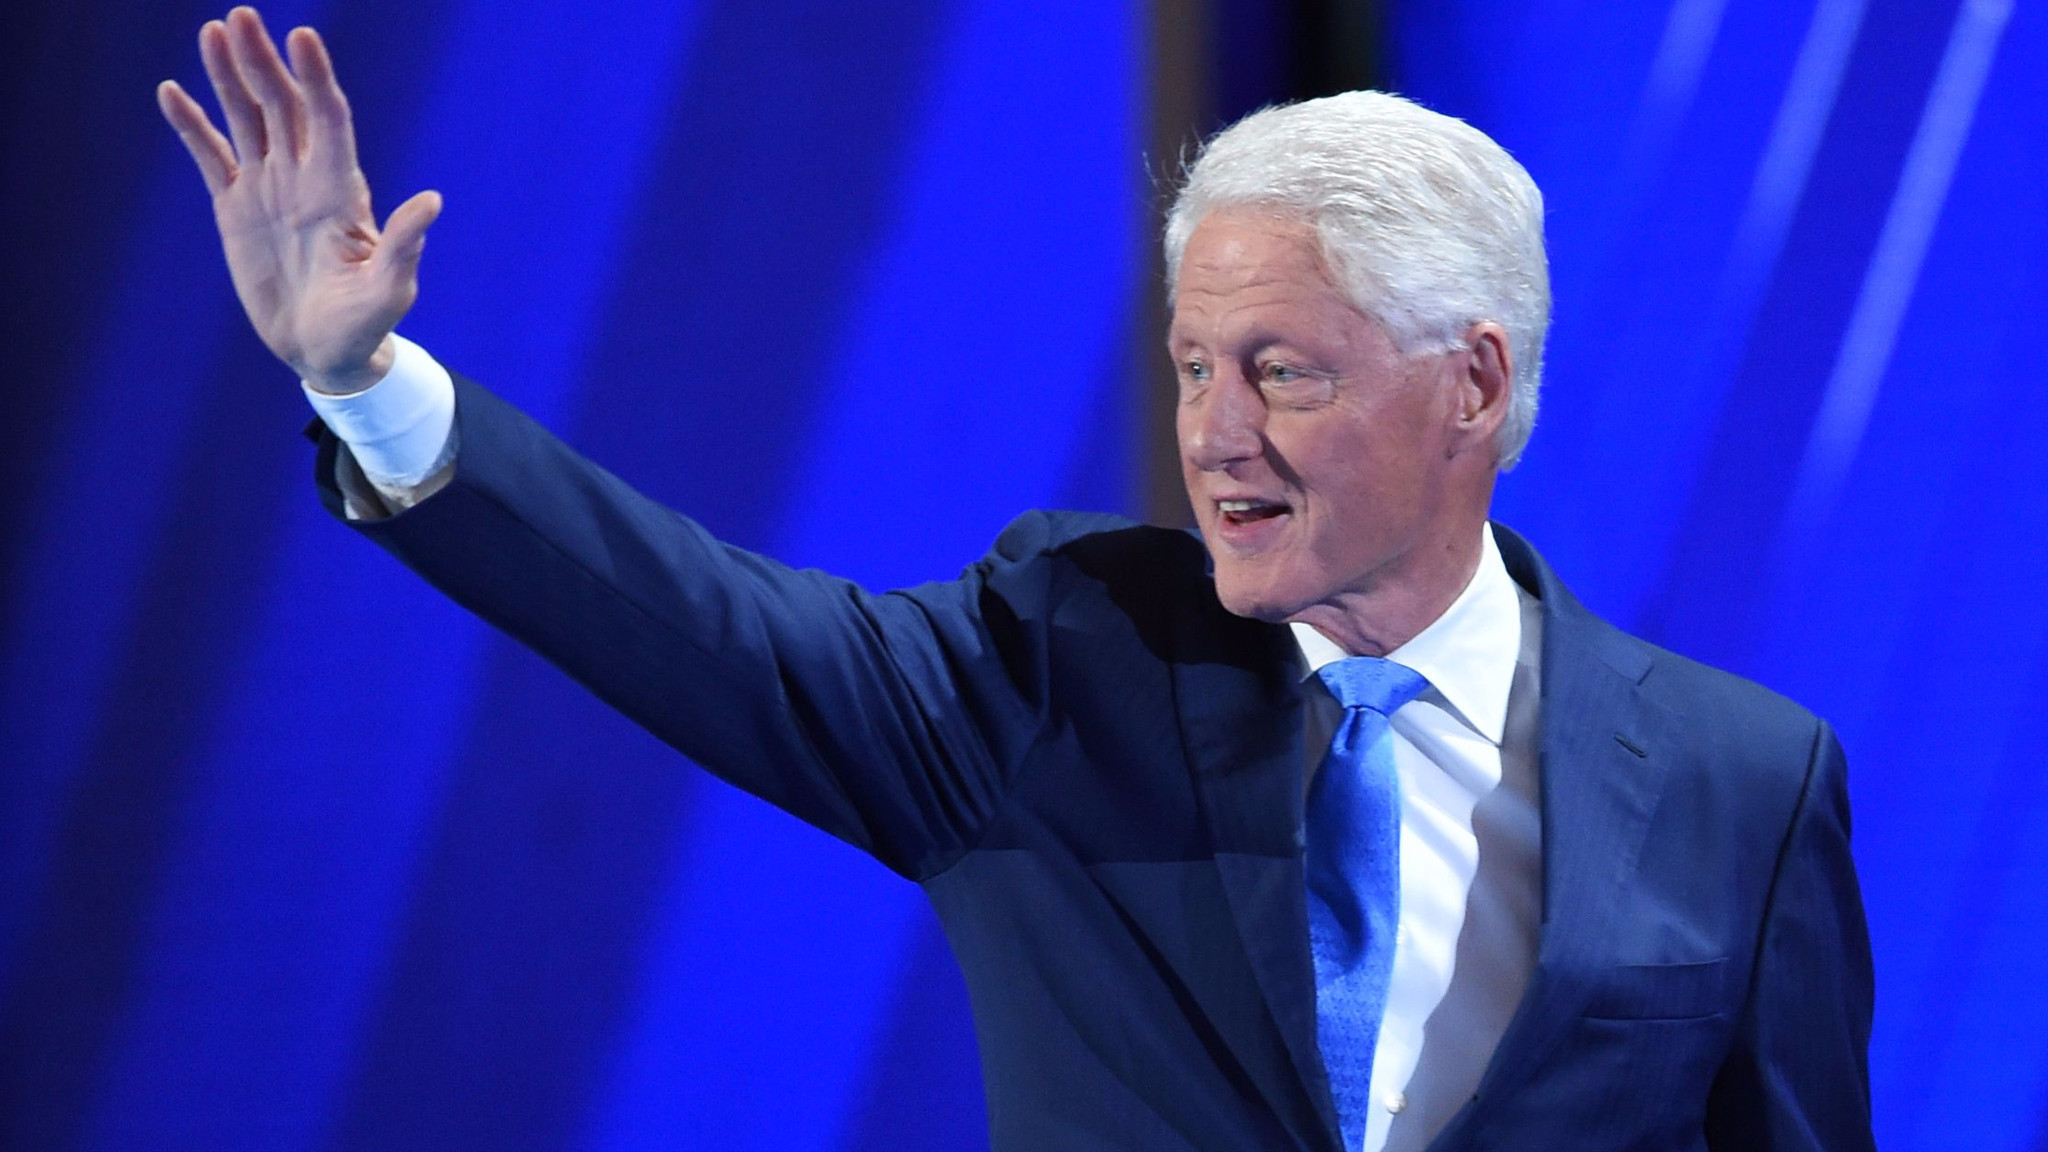 Bill Clinton goes true blue — with some subtle details — for his Democratic  convention speech – LA Times